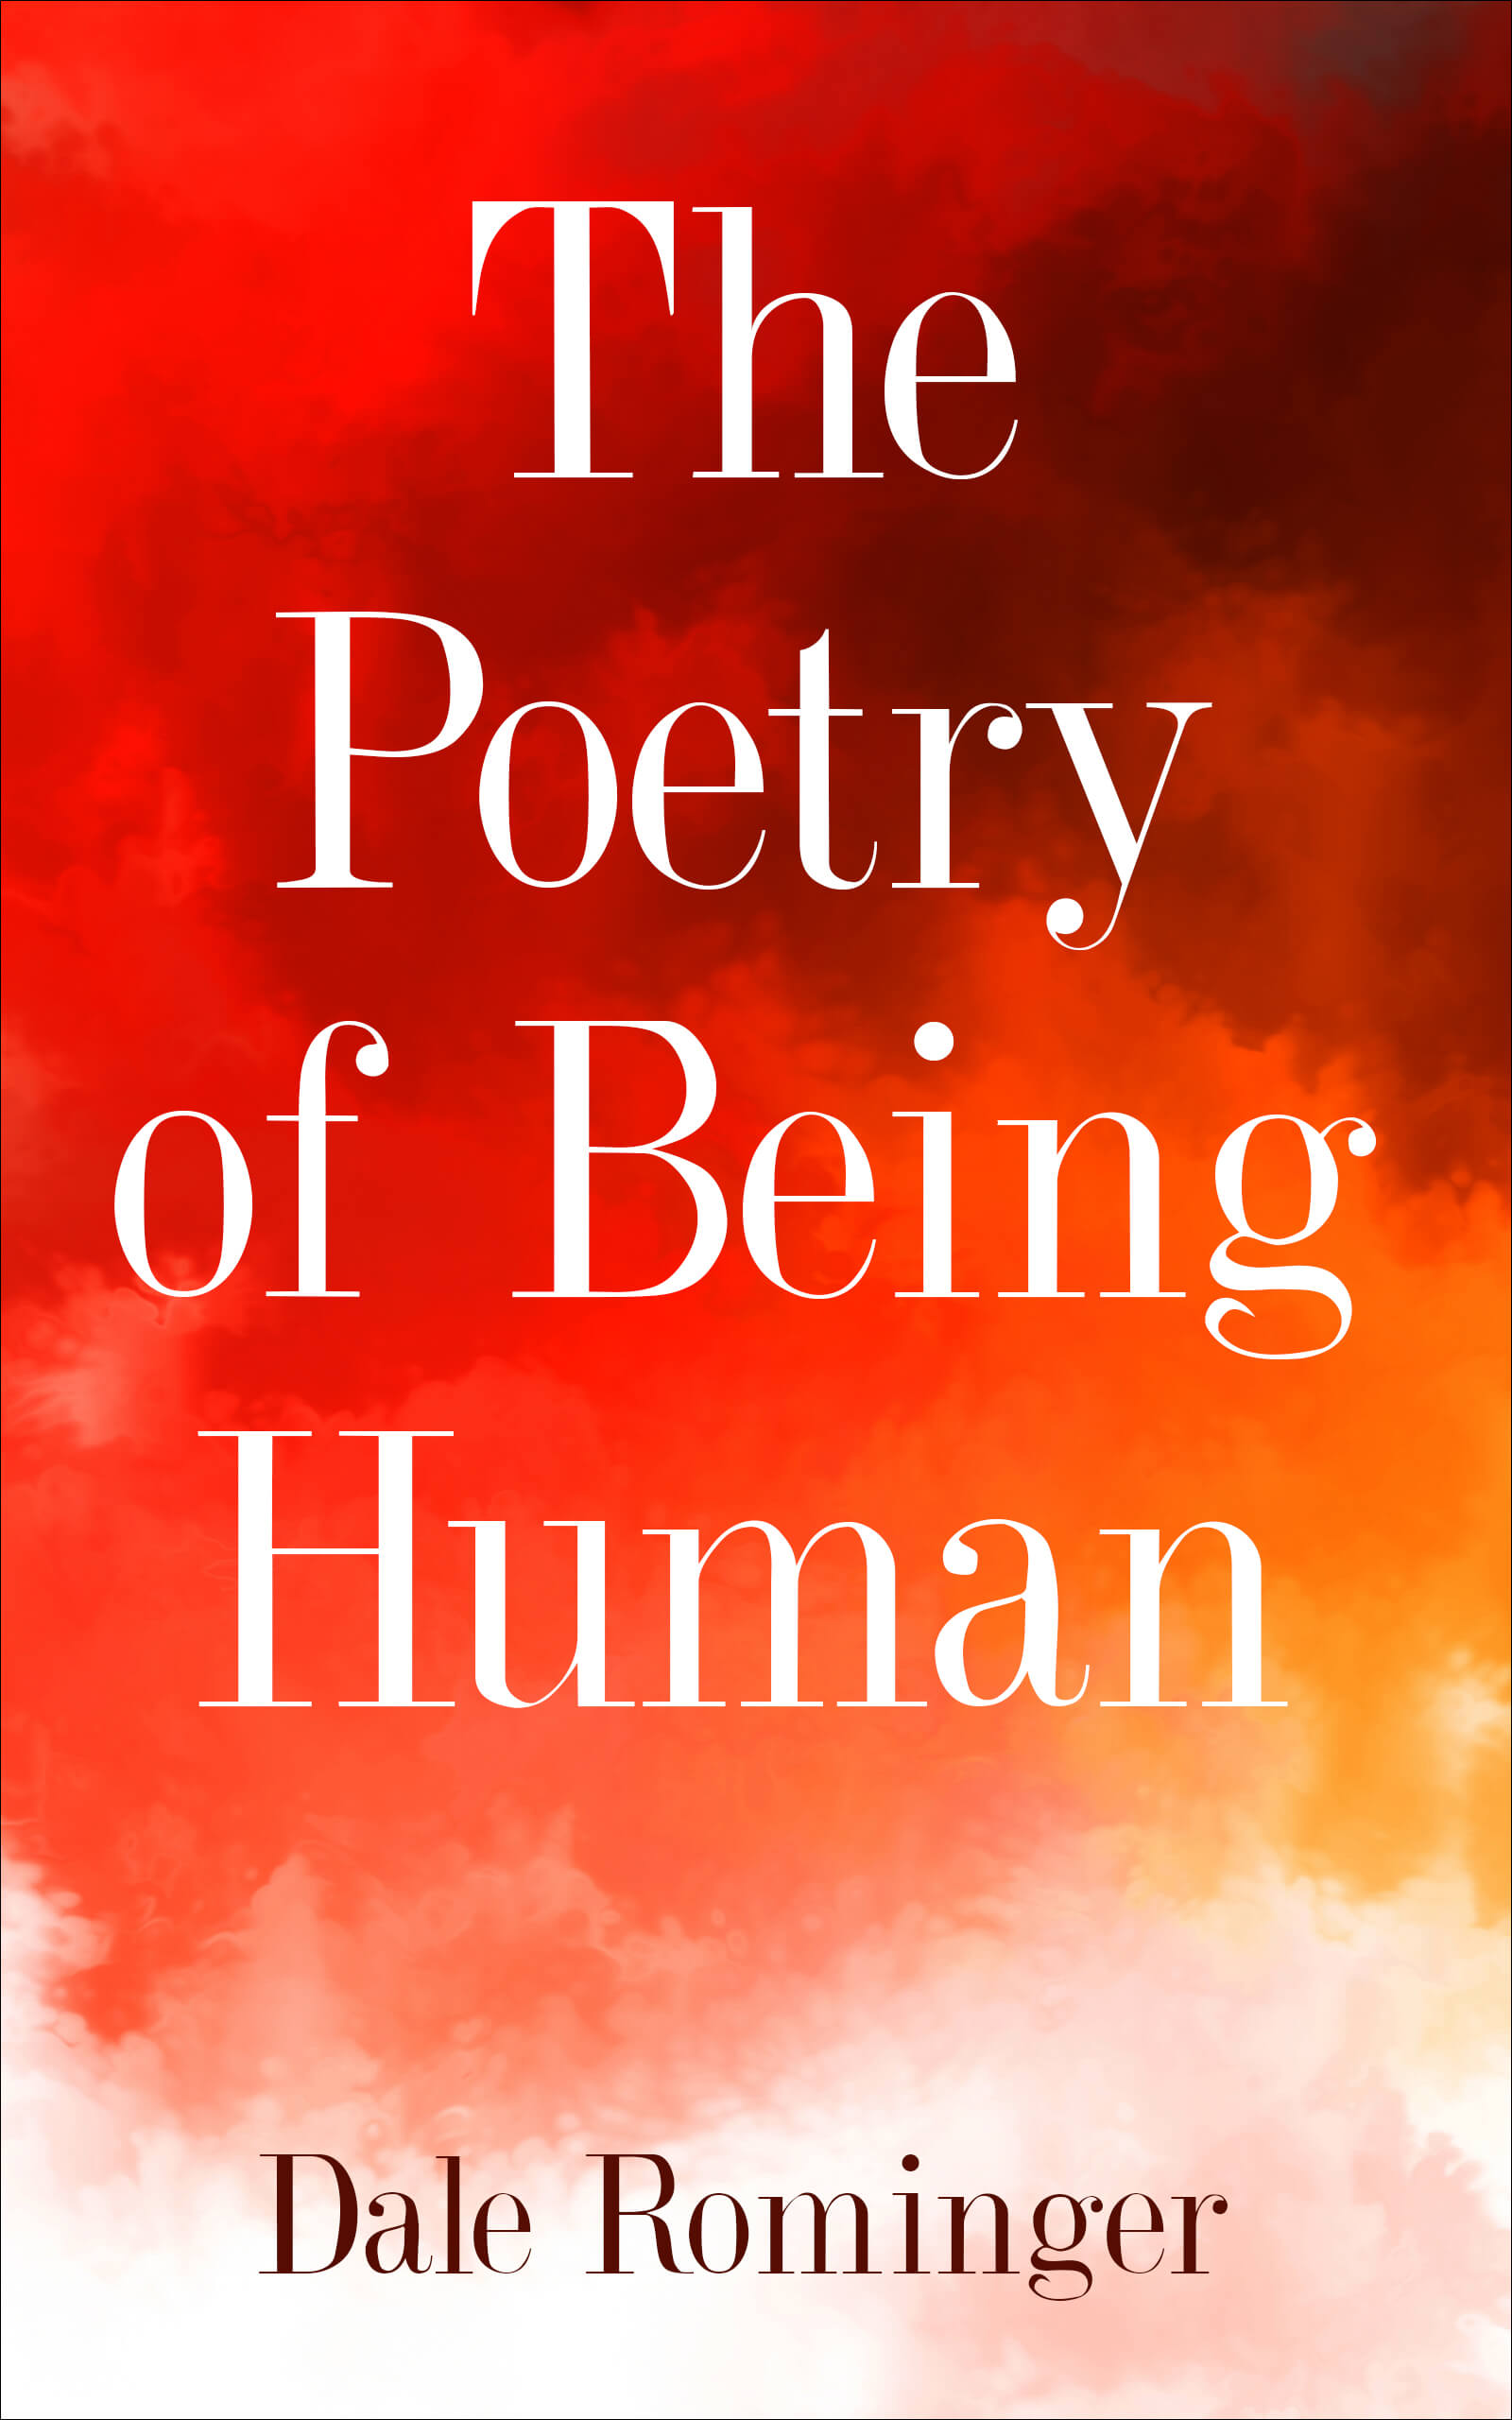 The Poetry of Being Human by Dale Rominger